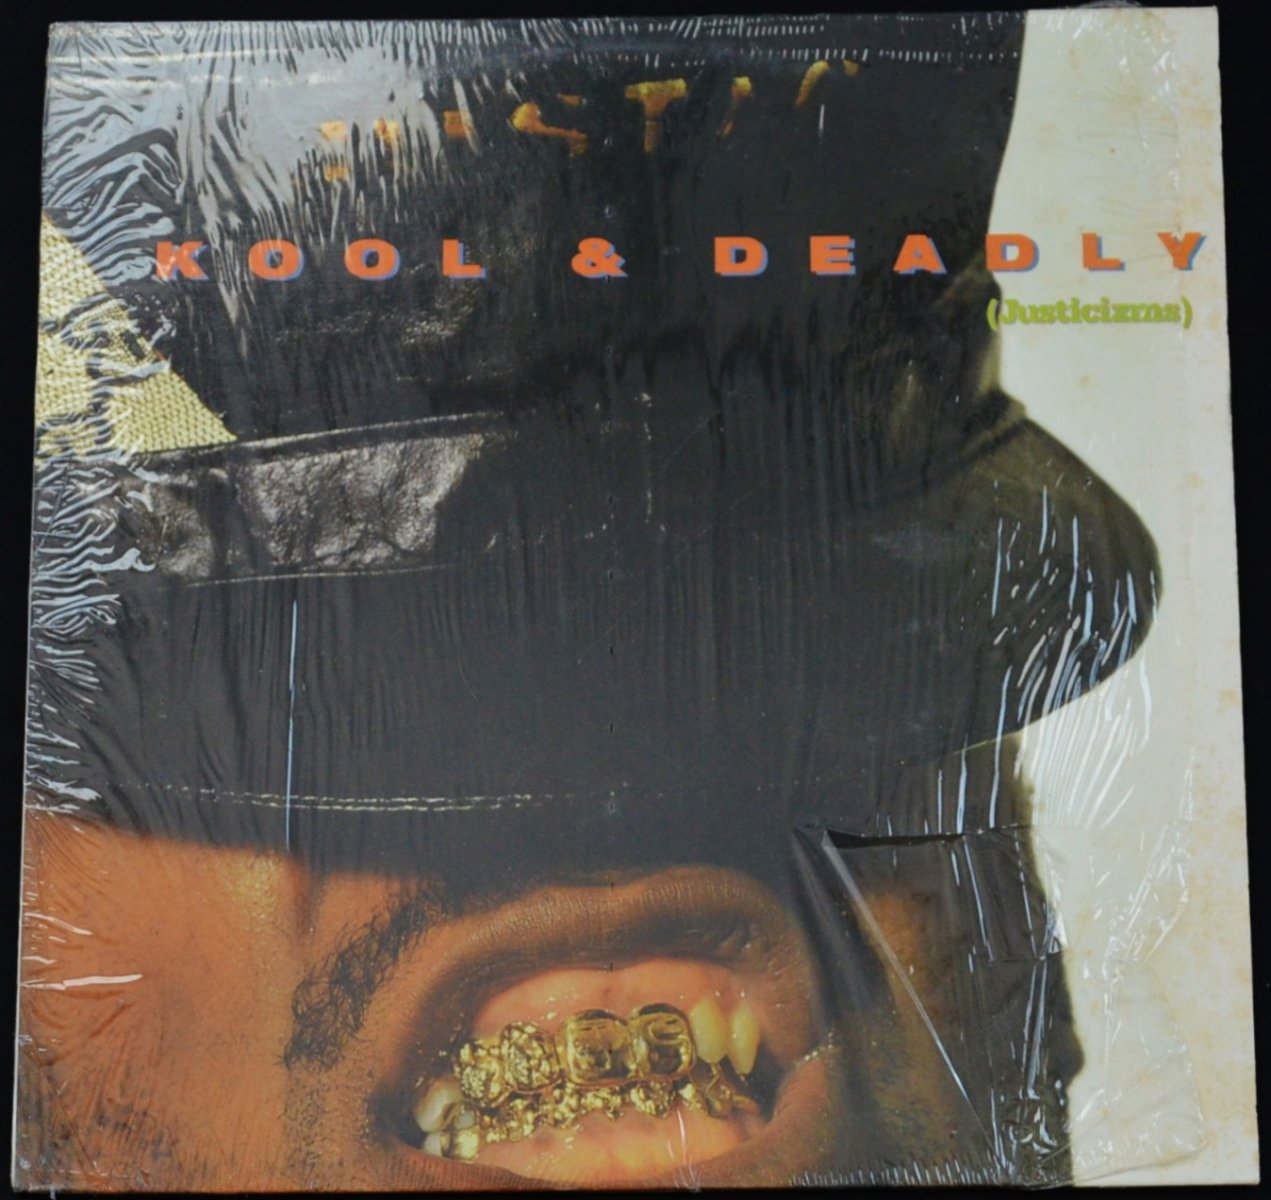 JUST-ICE / KOOL & DEADLY (JUSTICIZMS) (1LP)